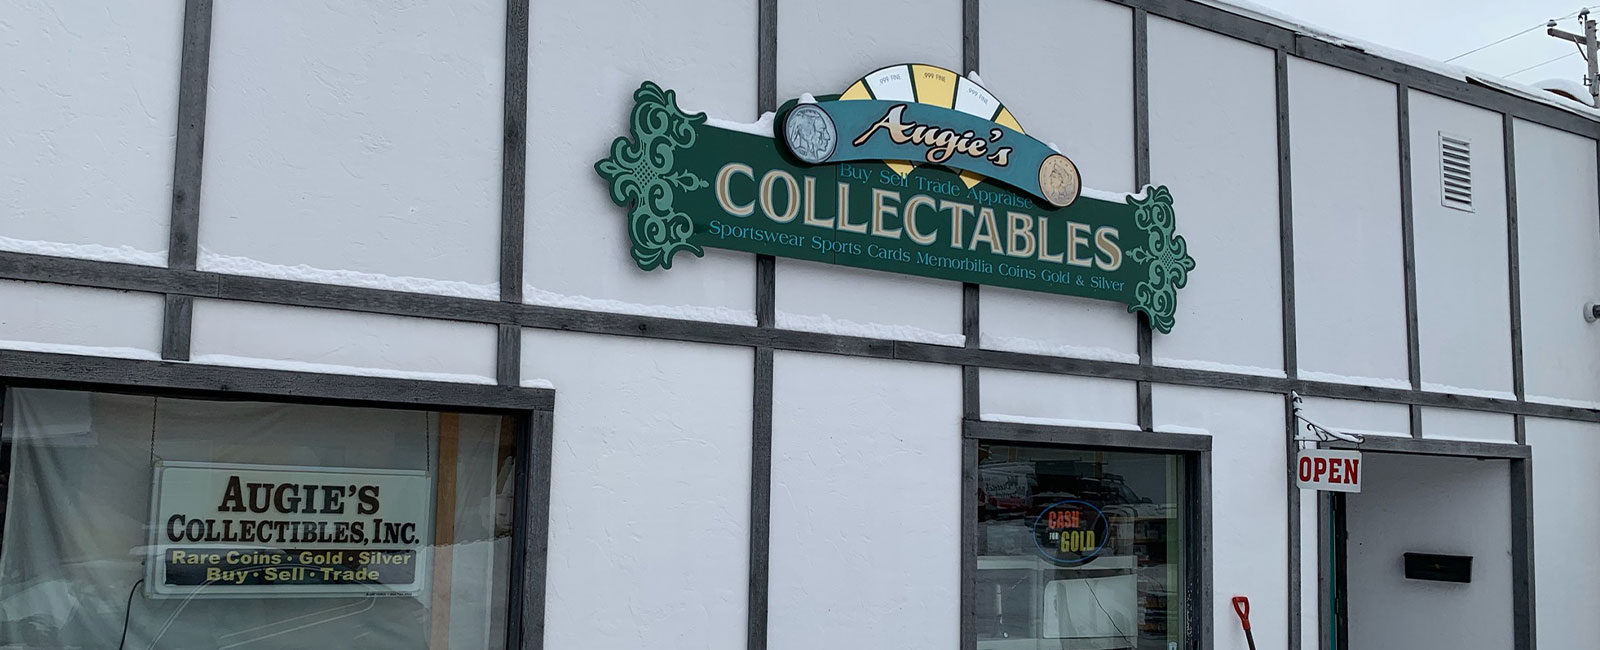 Augie's Collectibles